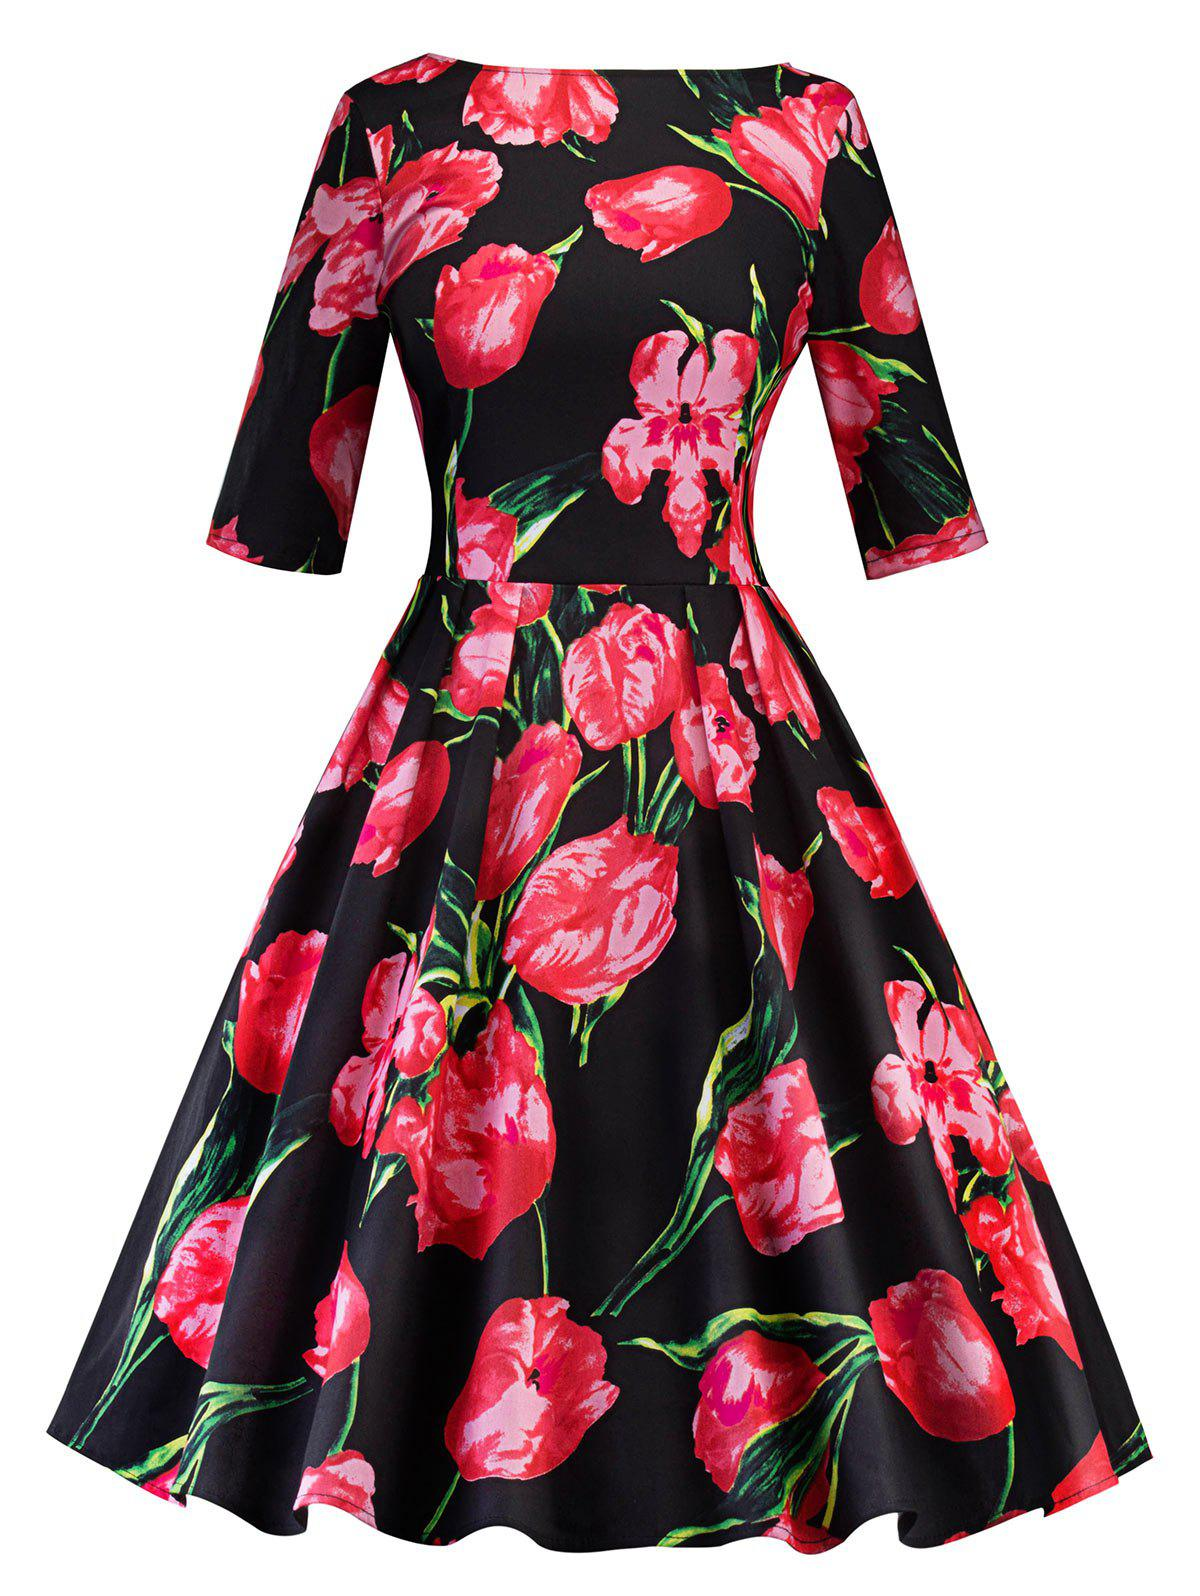 Vintage Floral Printed Party A Line Dress - BLACK/RED XL